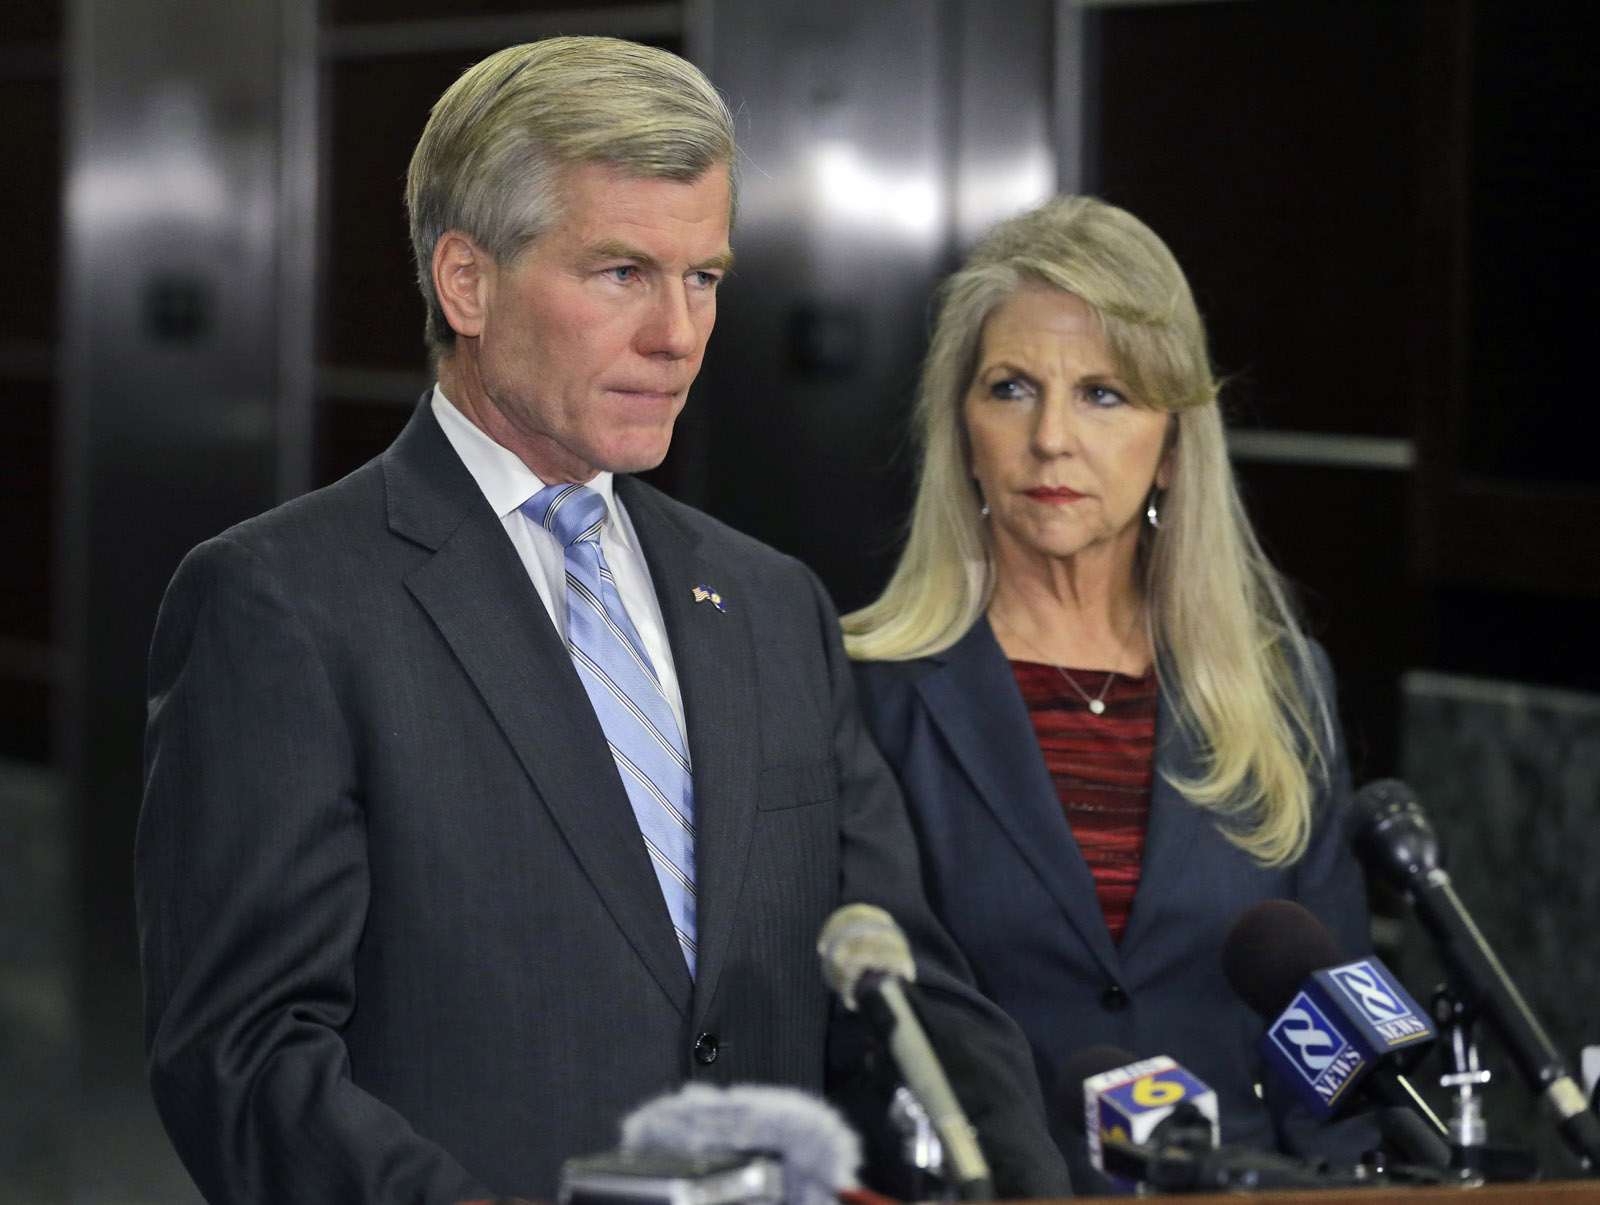 U.S. chief justice offers temporary prison reprieve to McDonnell